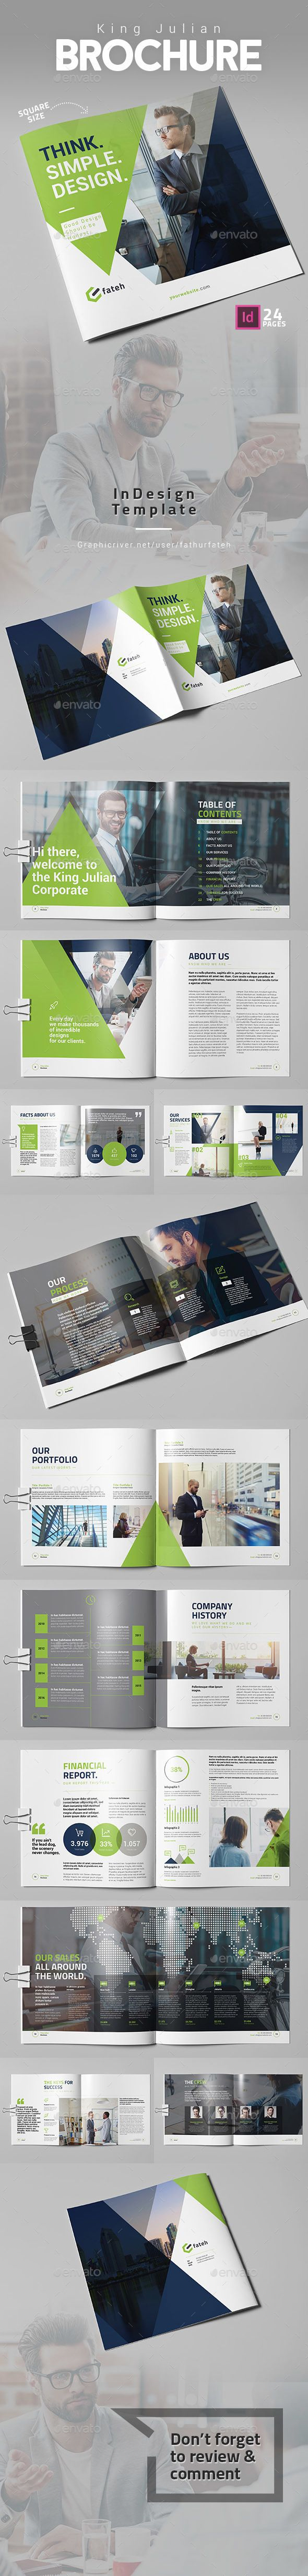 King Julian Brochure - Square - Corporate Brochures | Download: https://graphicriver.net/item/king-julian-brochure-square/19181291?ref=sinzo